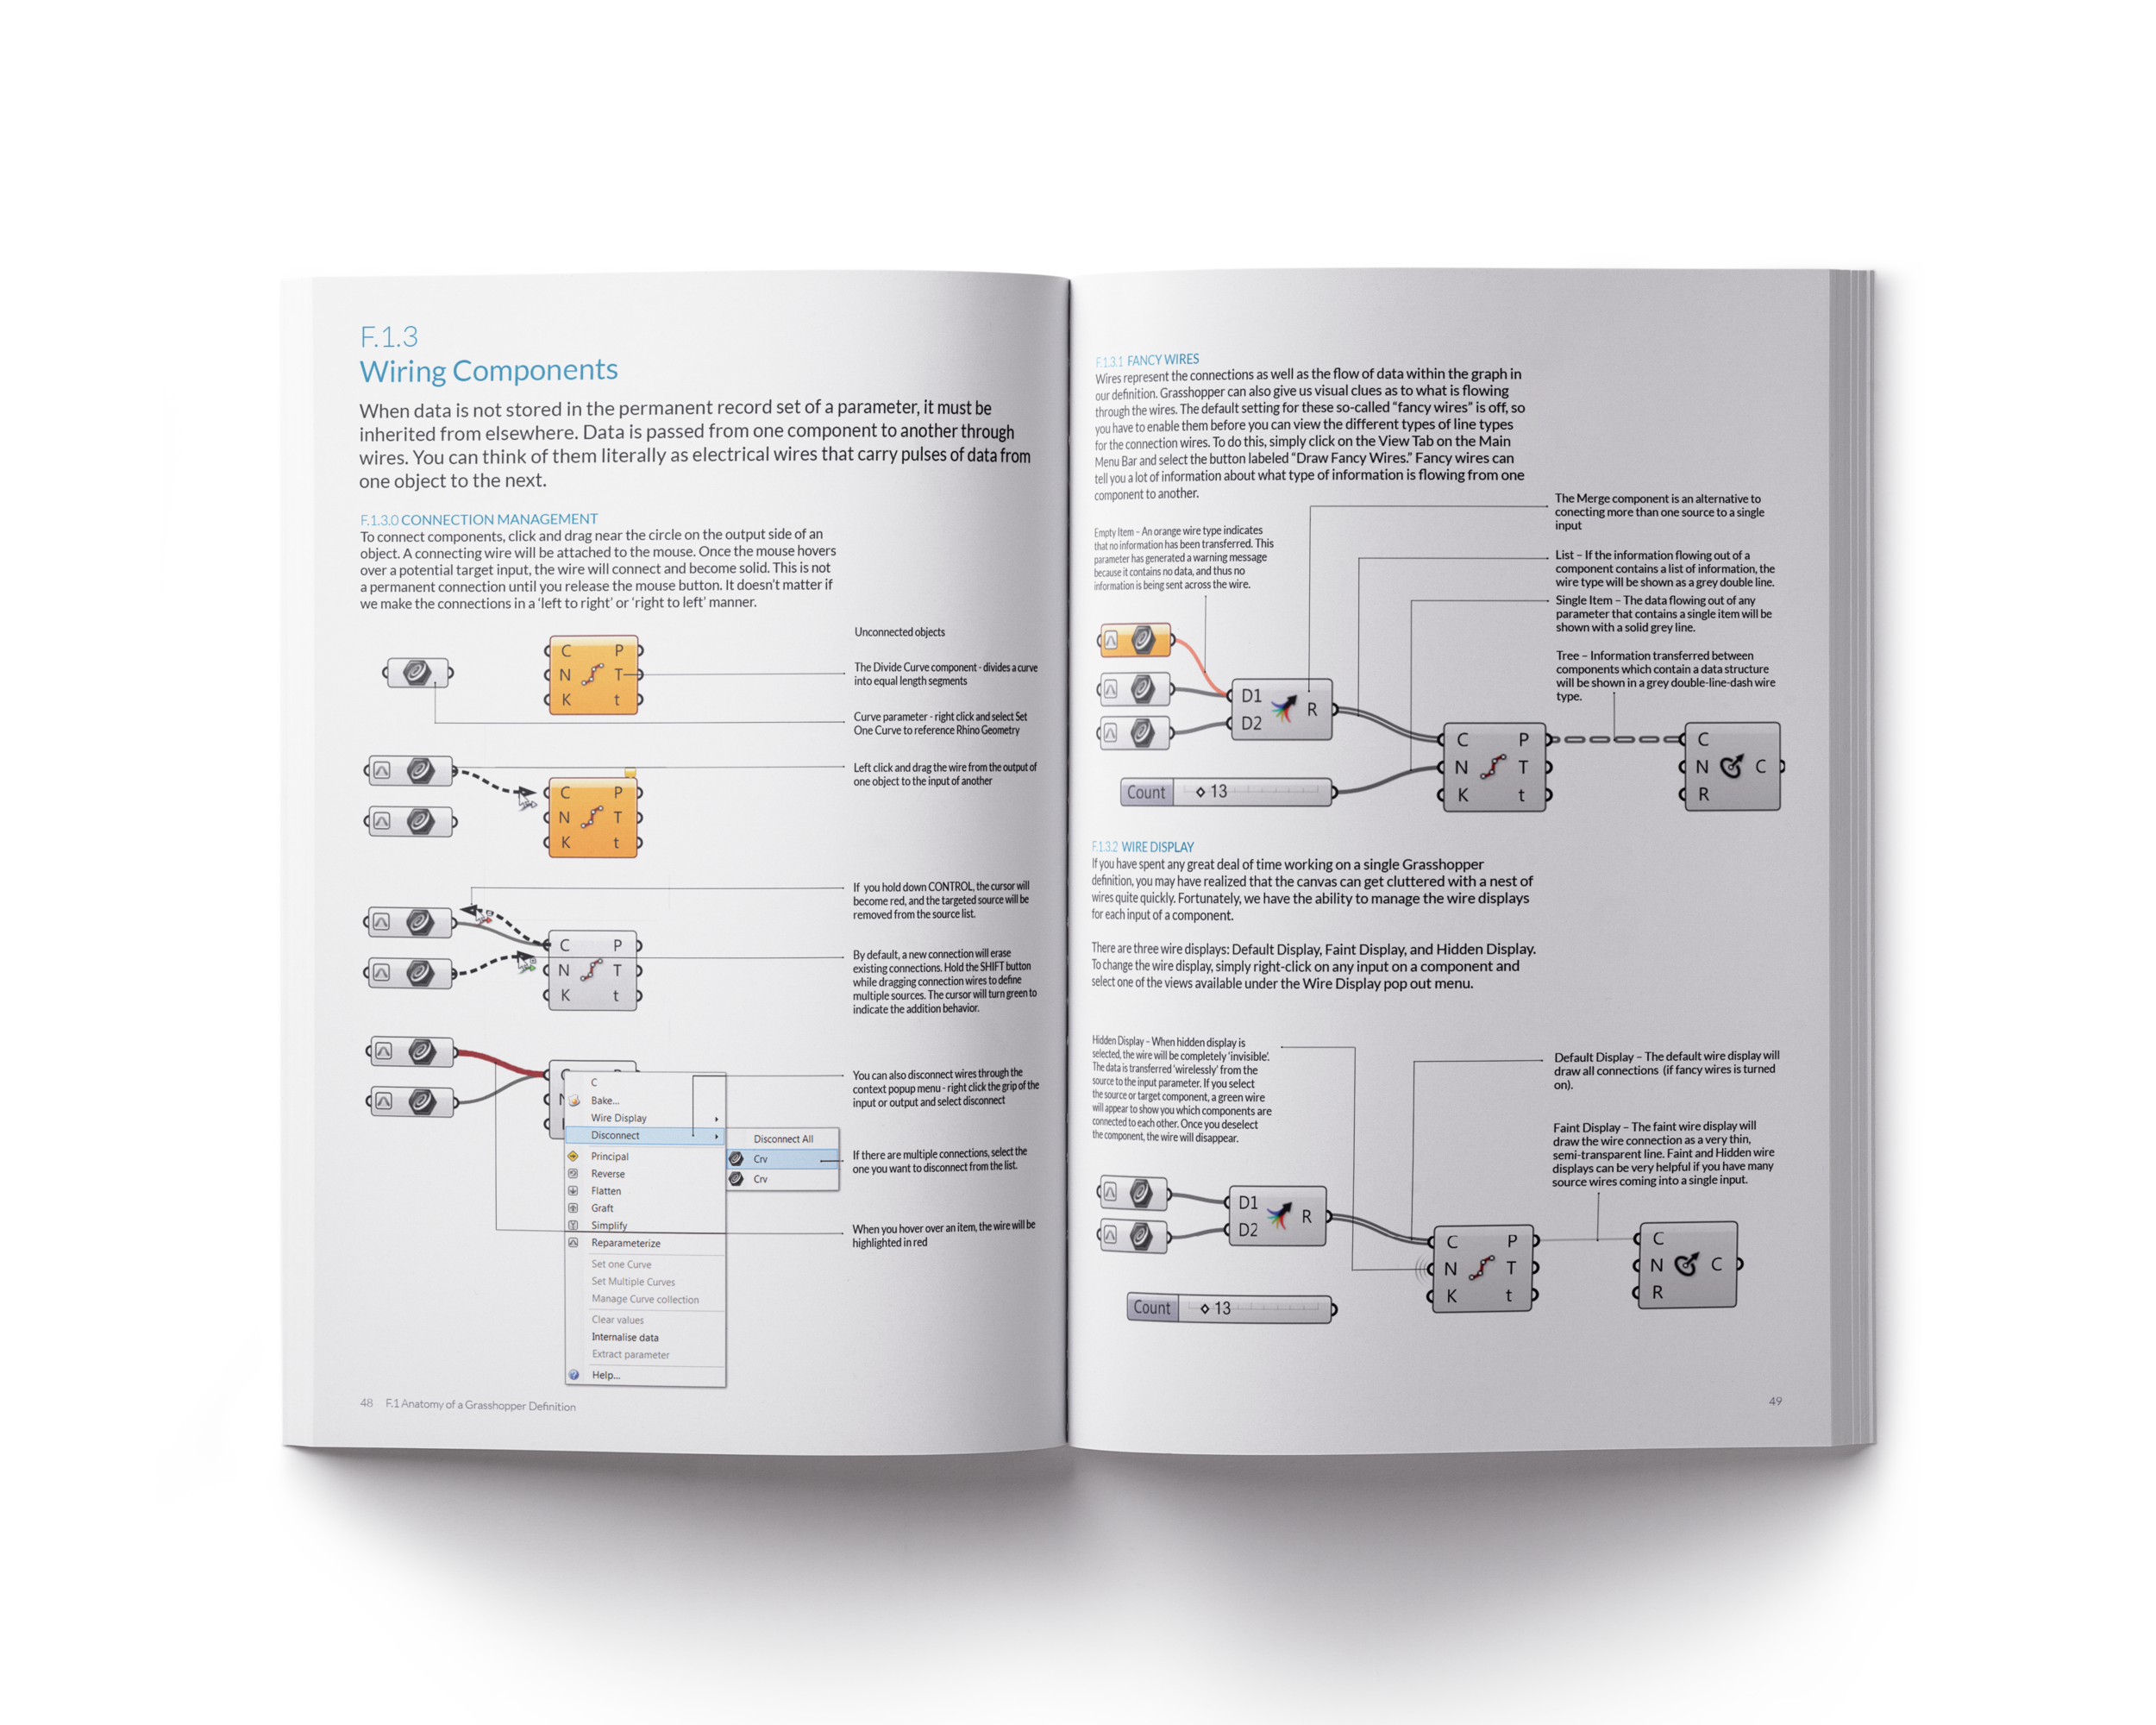 Grasshopper Primer, 3rd Ed. - An introduction to visual programming with Rhino3D and Grasshopper.